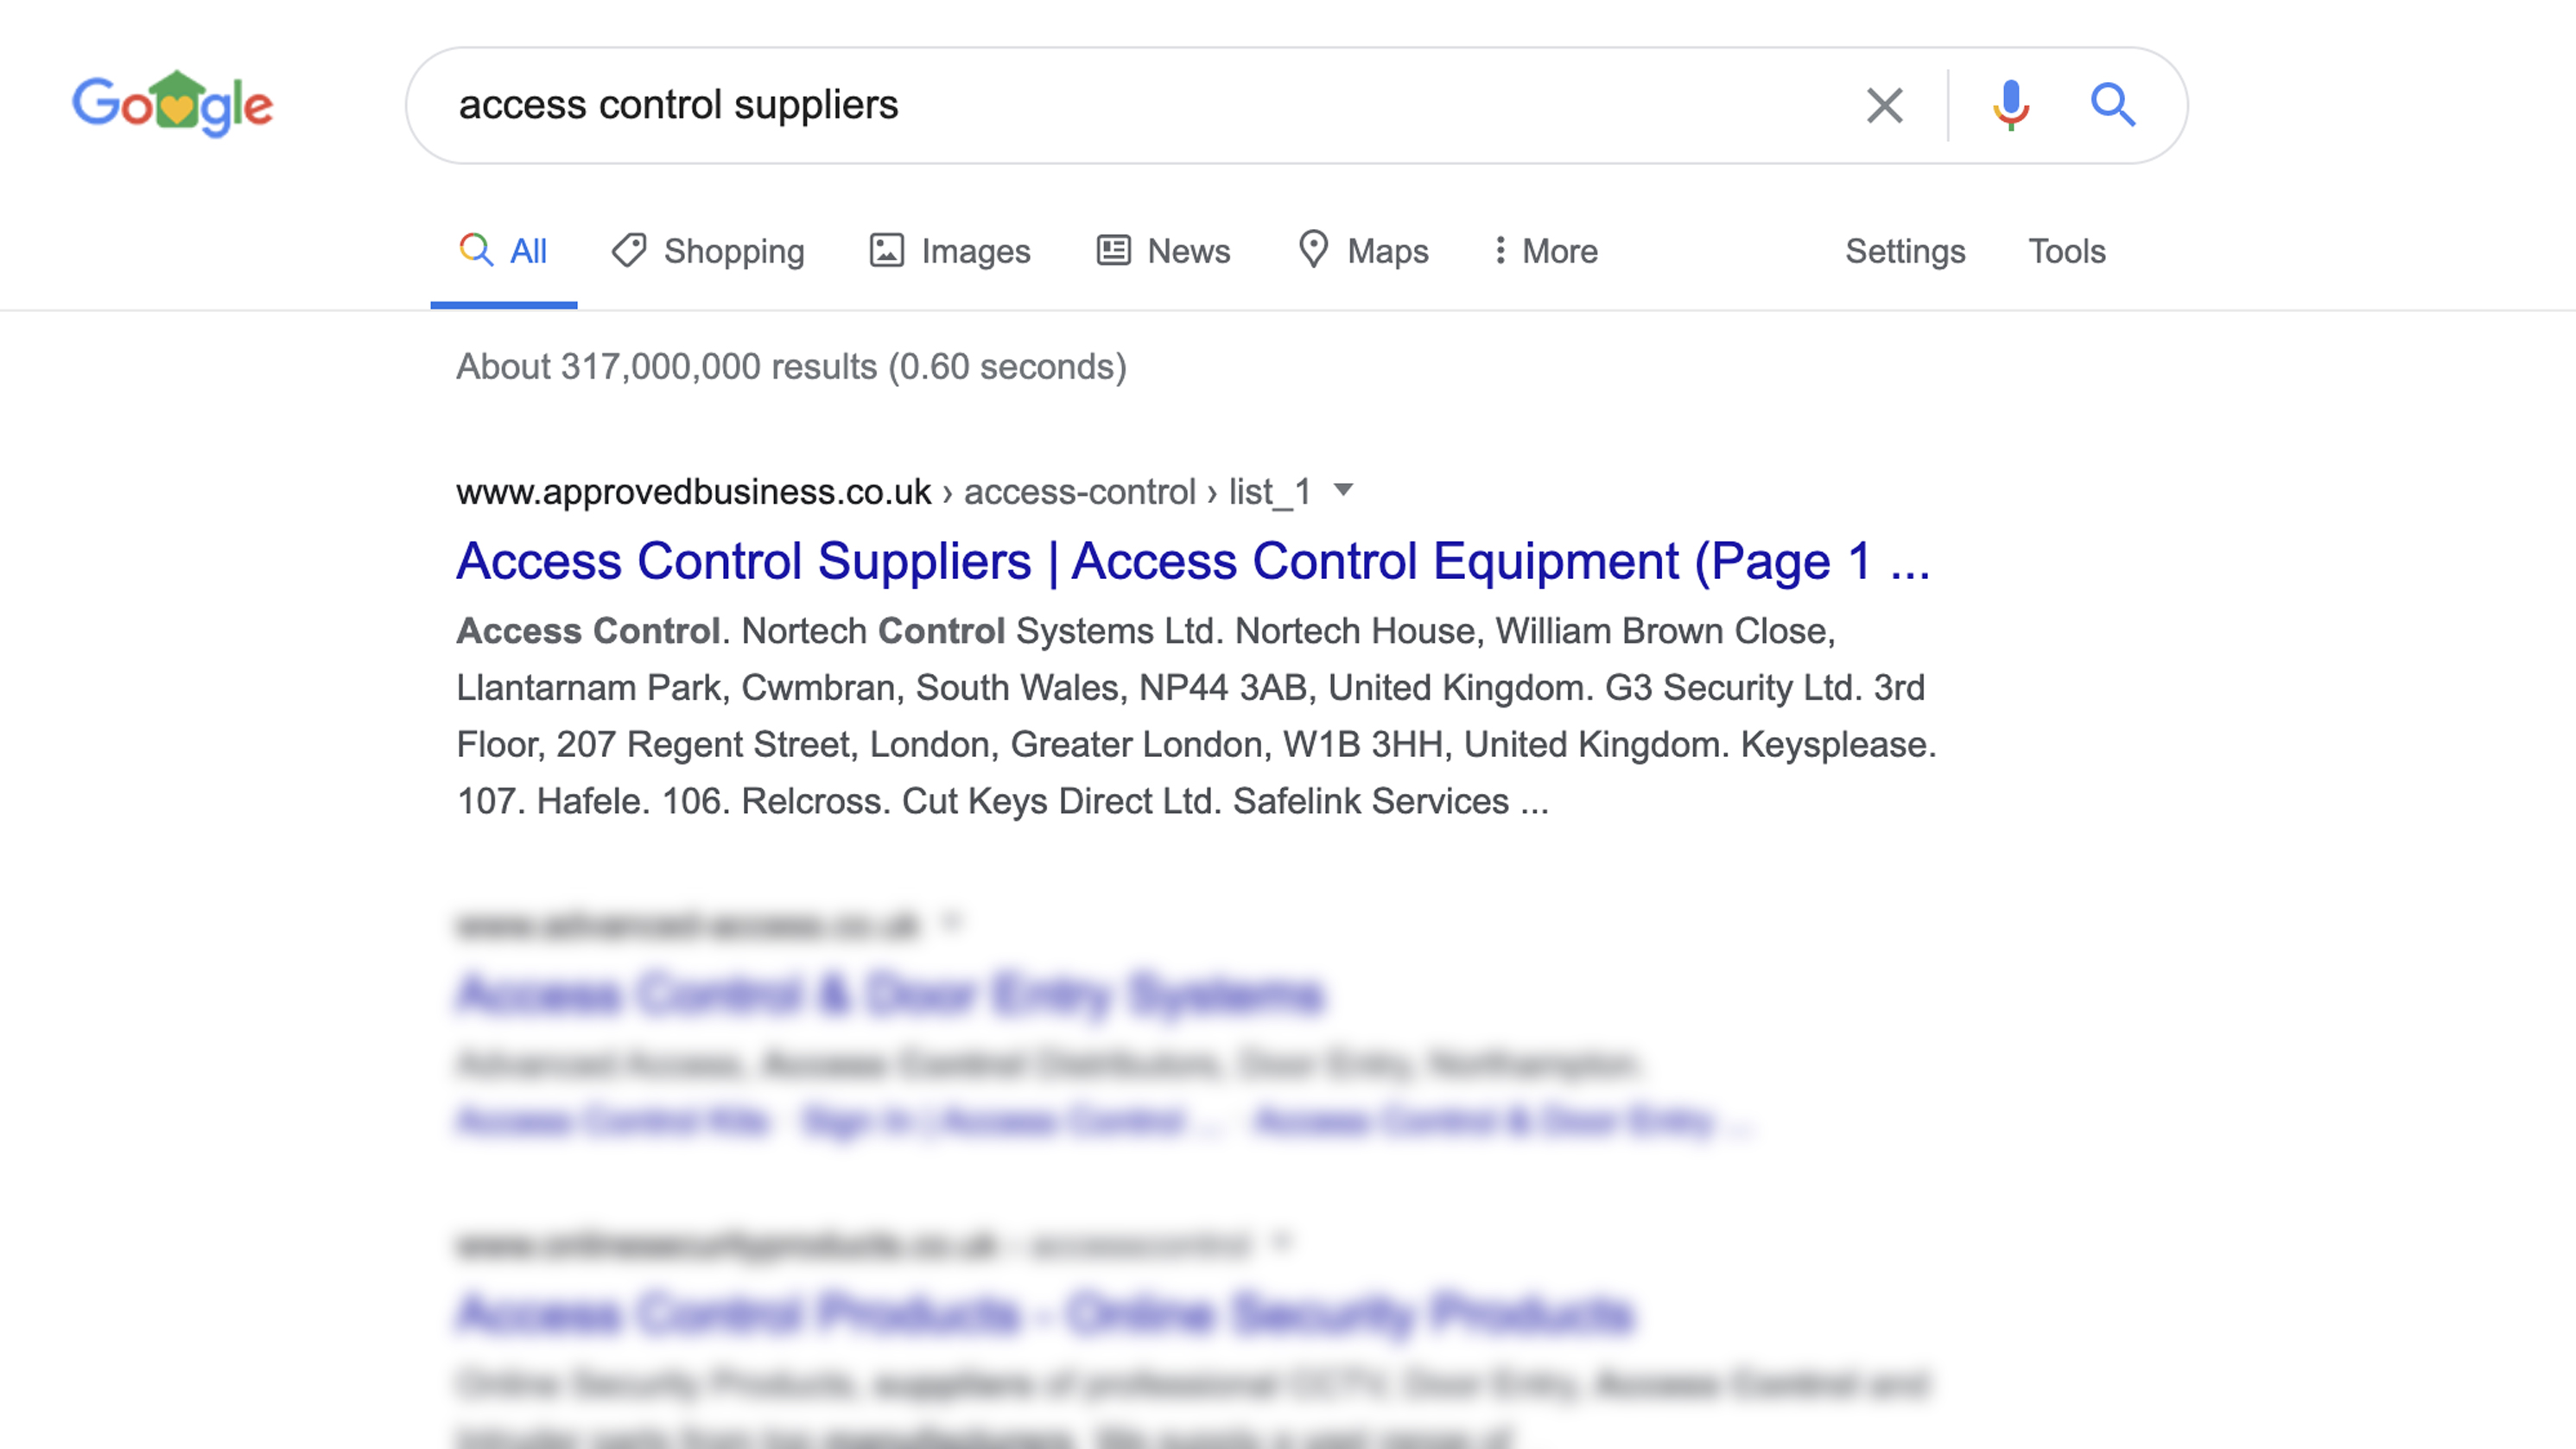 Google screenshot showing access control suppliers